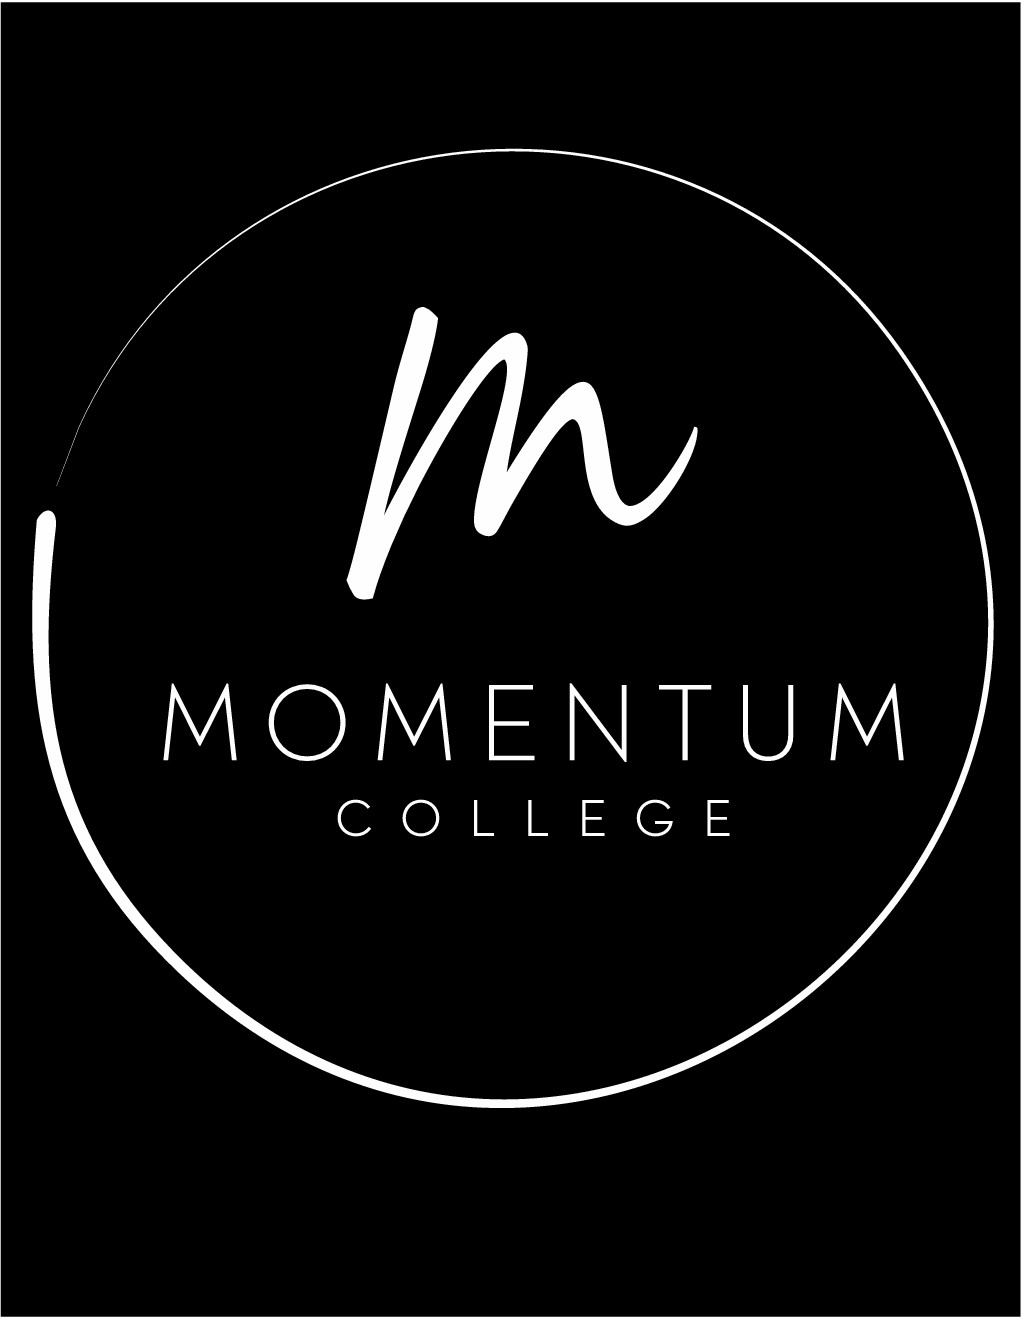 Design a modern, kreative and simple logo for a College